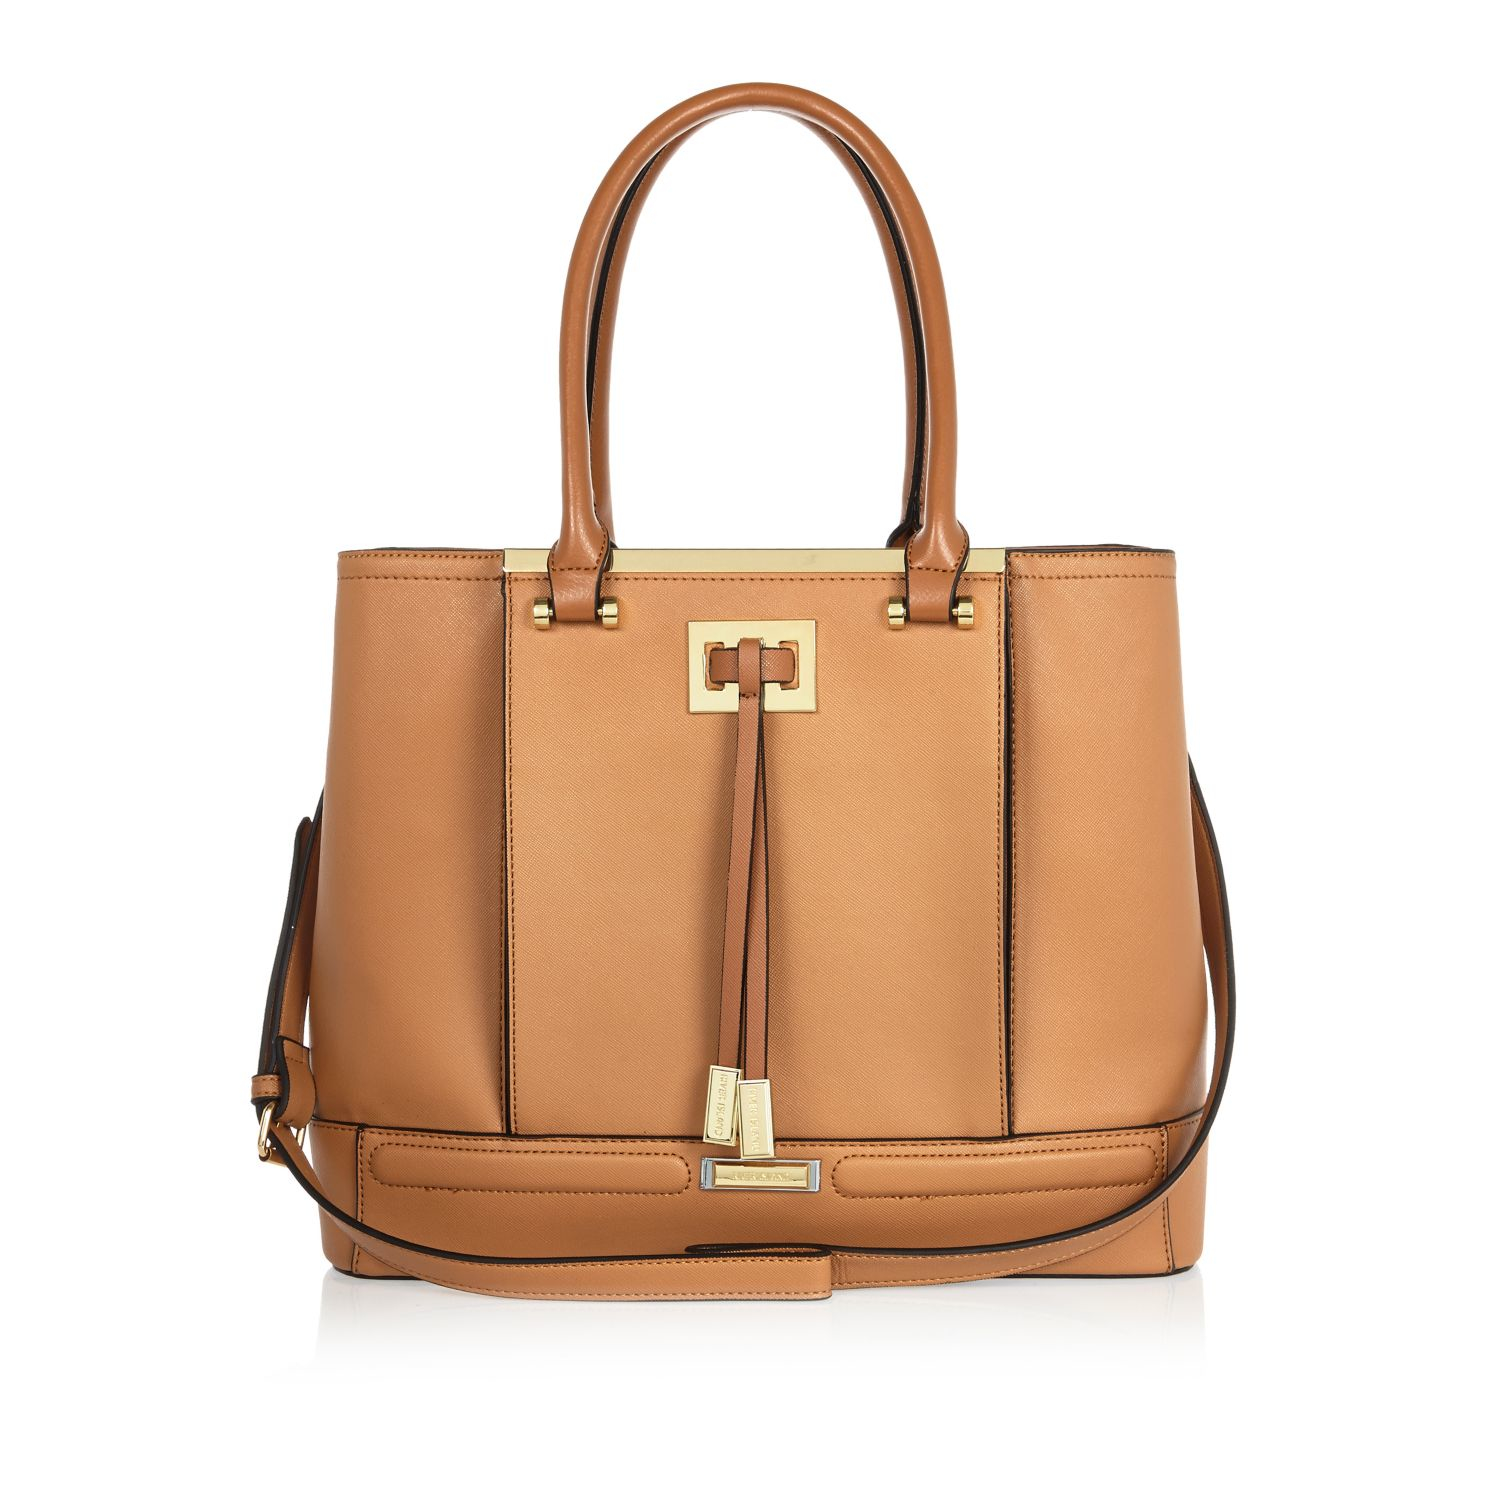 23868dc7bbdf River Island Tan Brown Structured Tote Handbag in Natural - Lyst